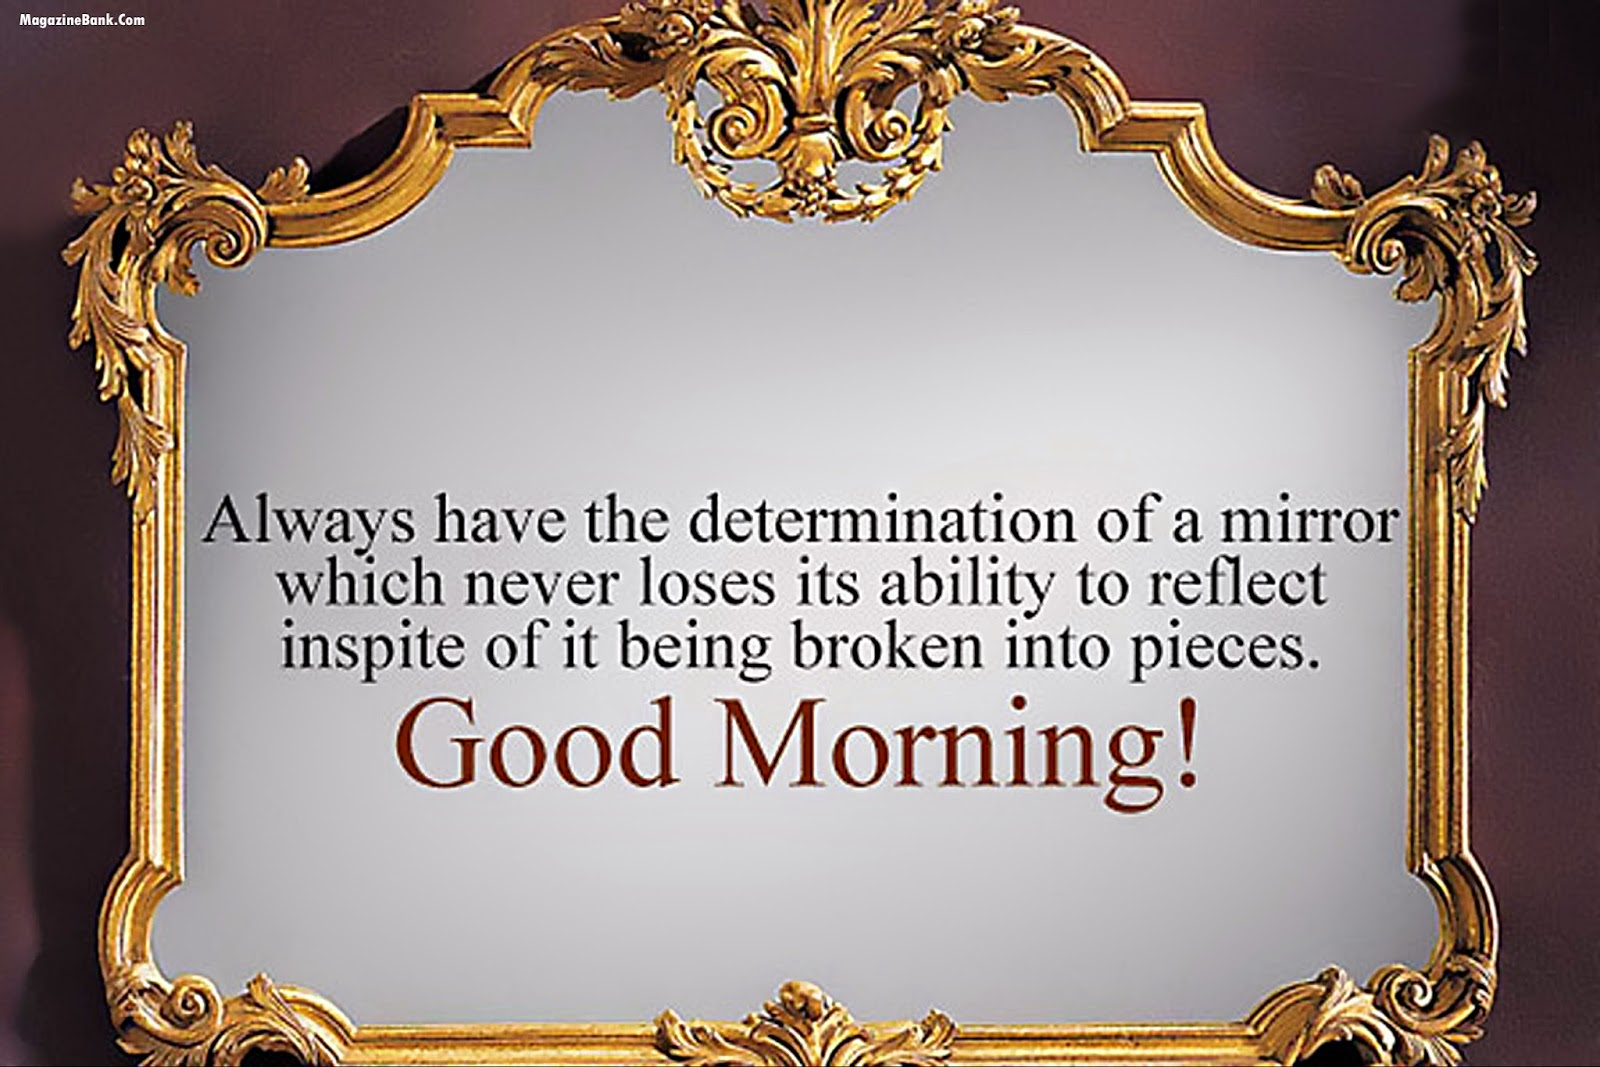 Good Morning Image Sms Wish Sms 2 Text Only Made For Sms